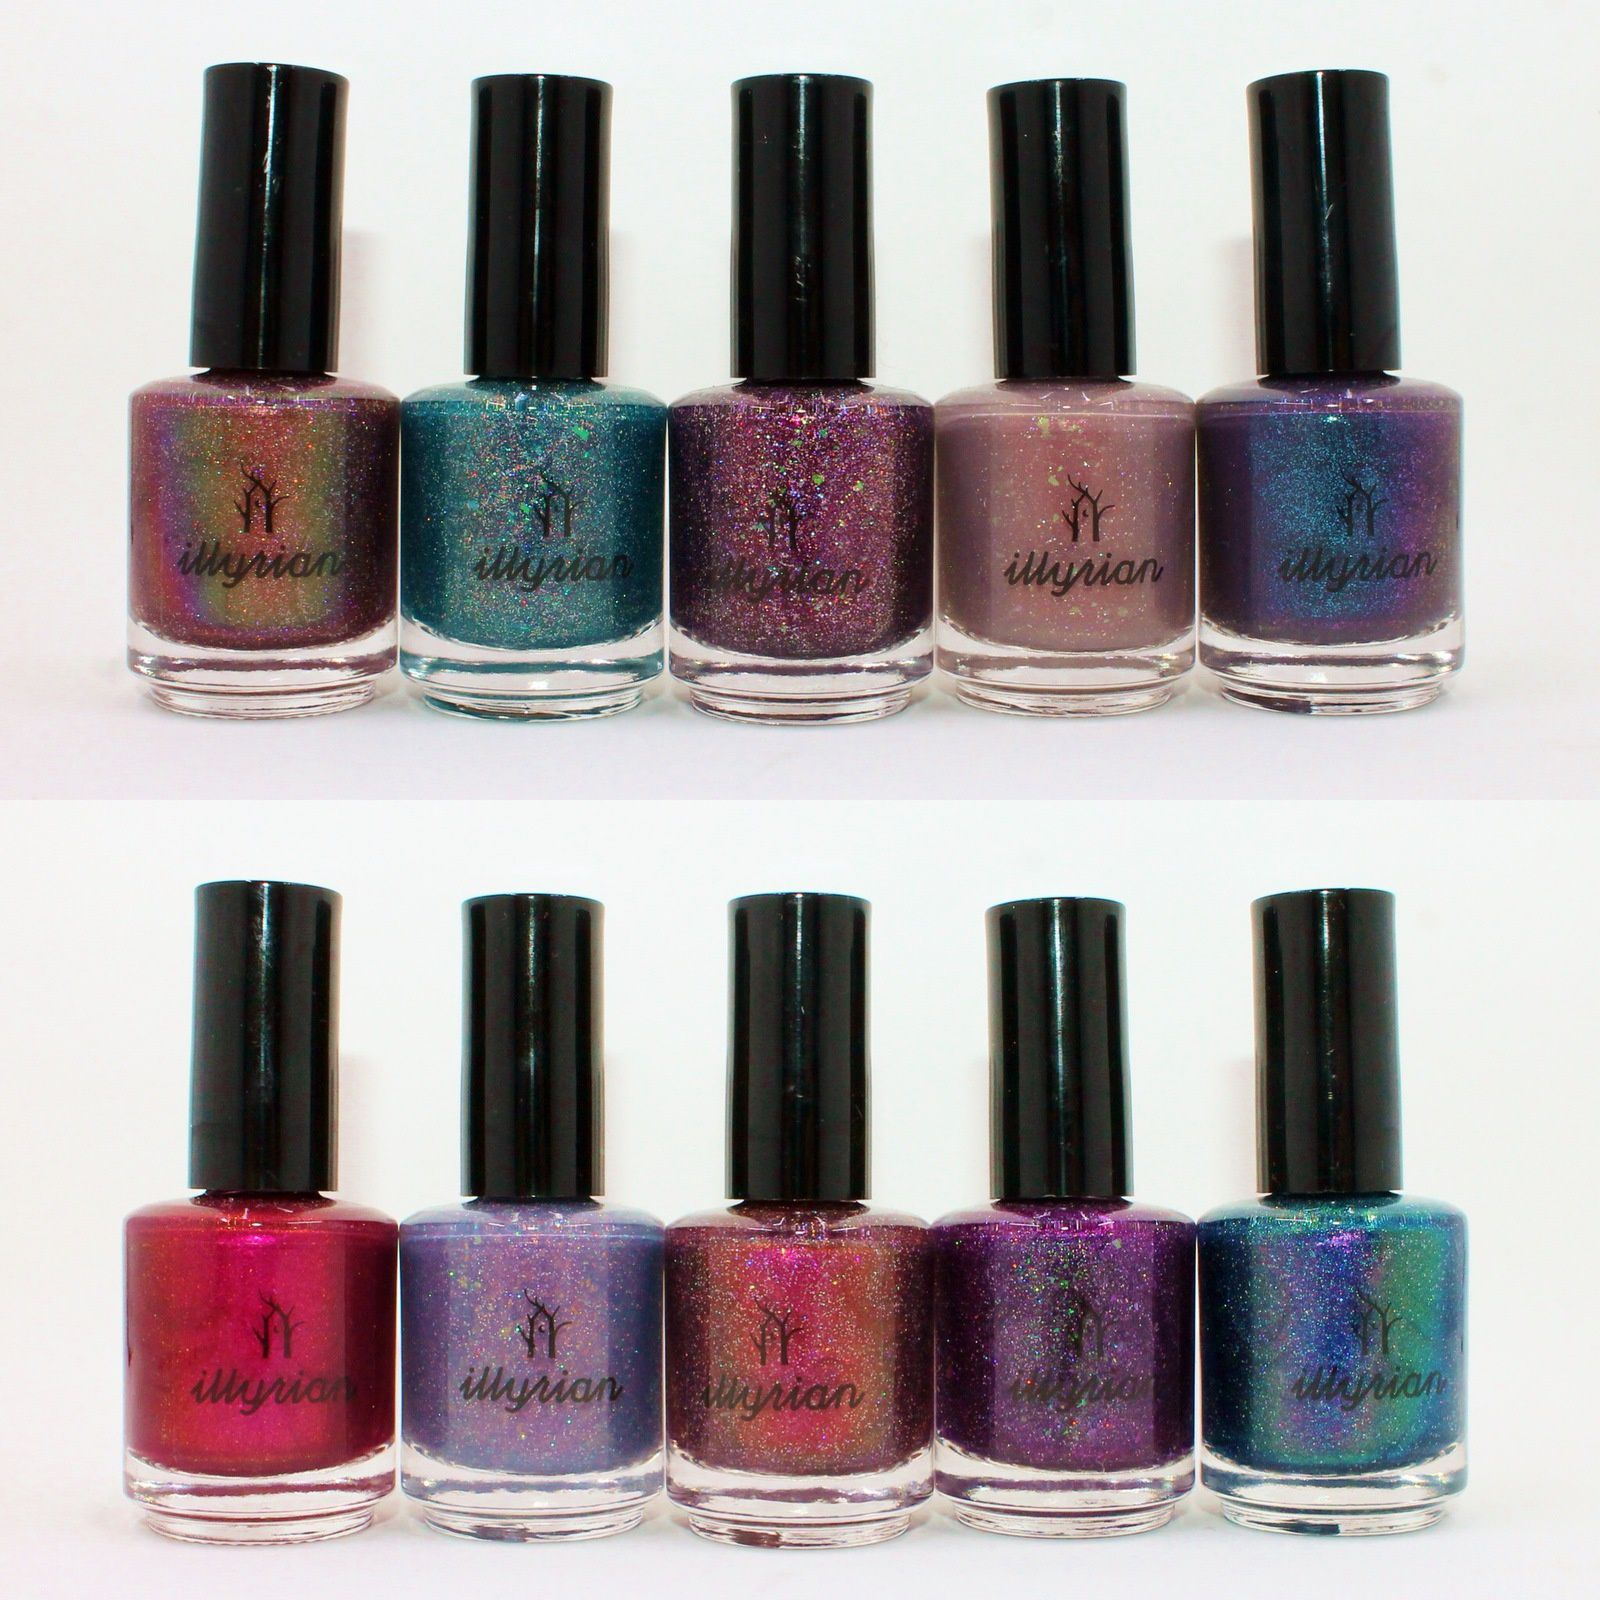 Illyrian Polish Strange, Beyond, Prototype 5, Prototype 60, Odd, Prototype 99, Dusk Till Dawn, Stargaze, Riddle, In The Clouds.